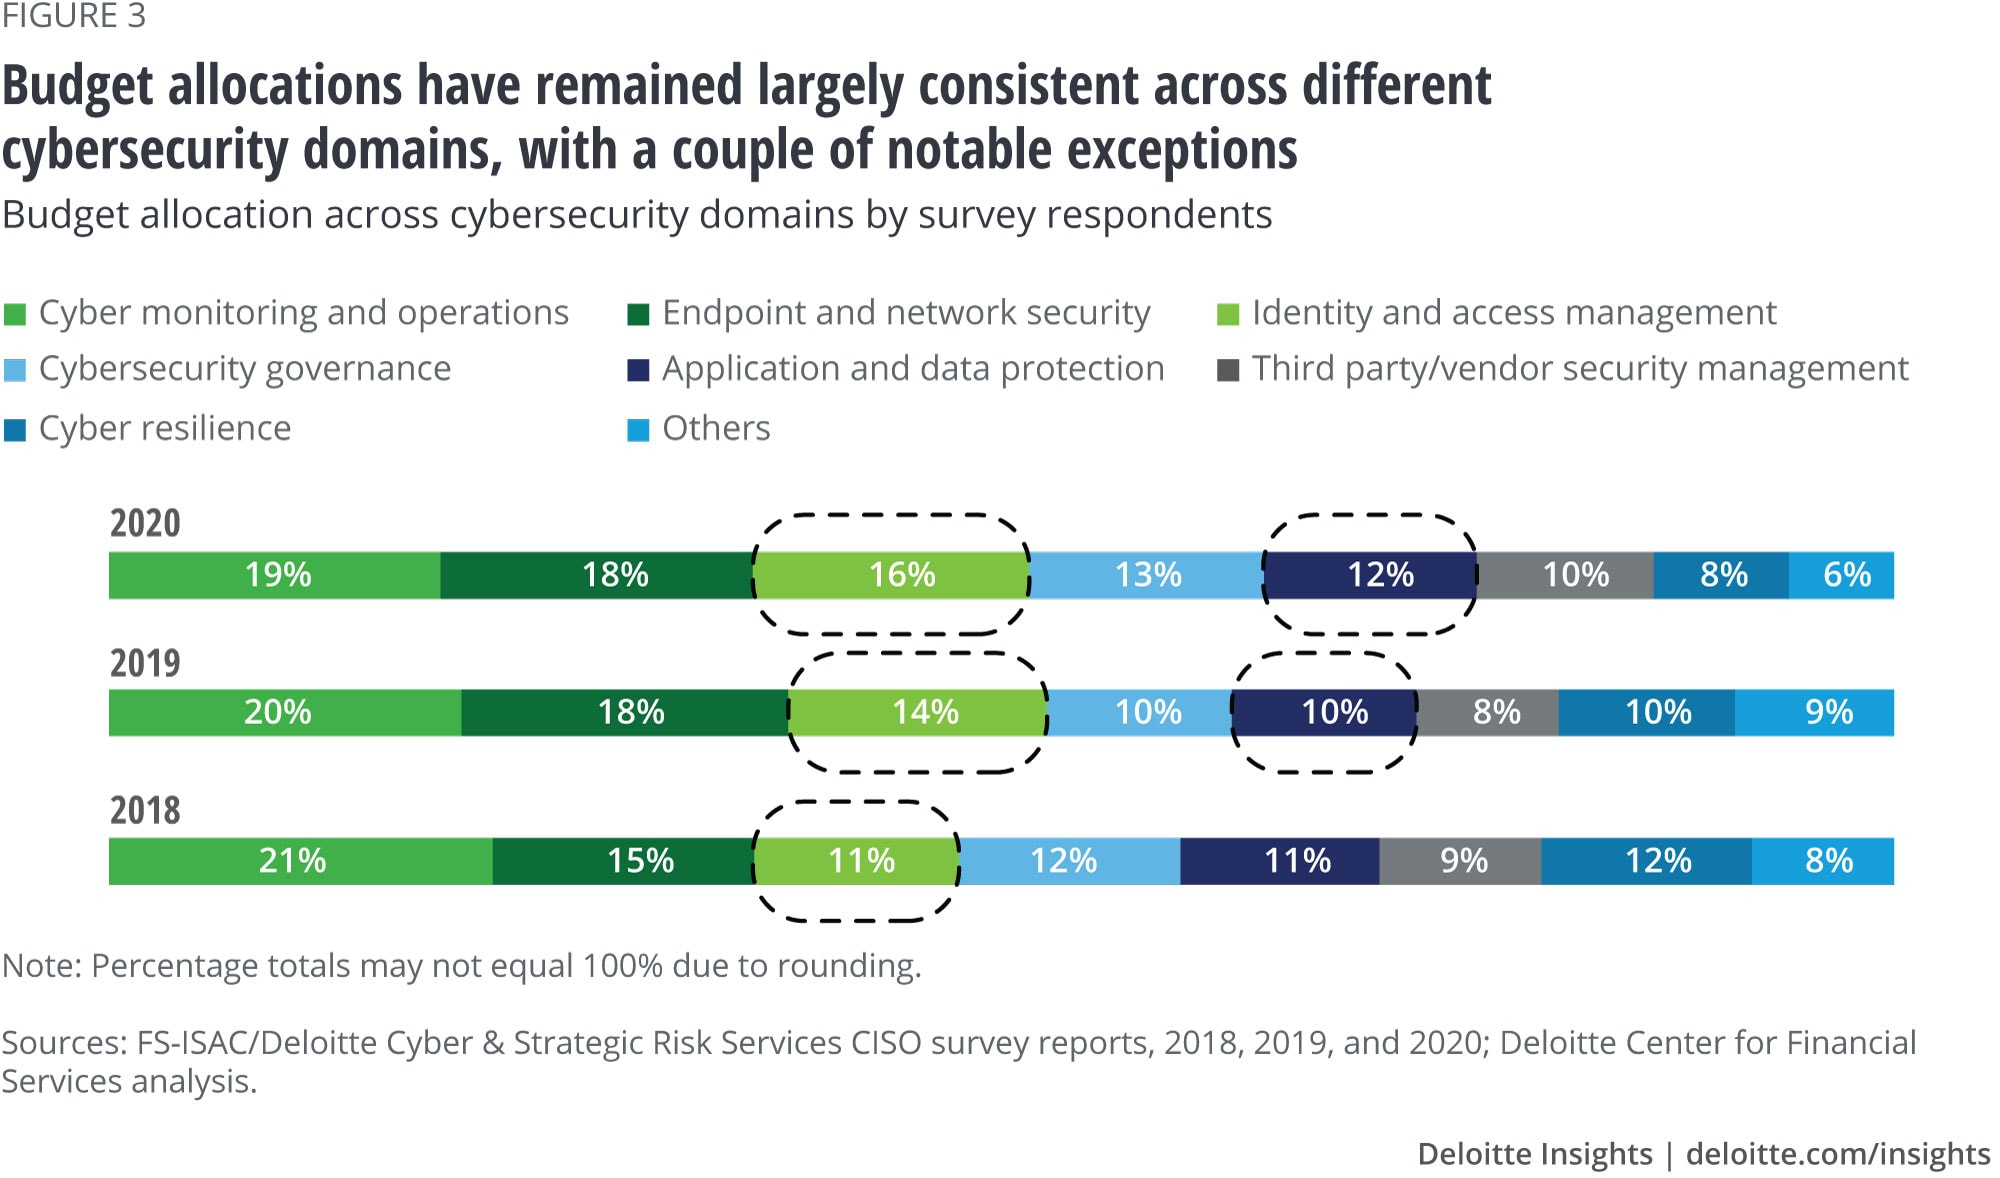 Budget allocations have remained largely consistent across different cybersecurity domains